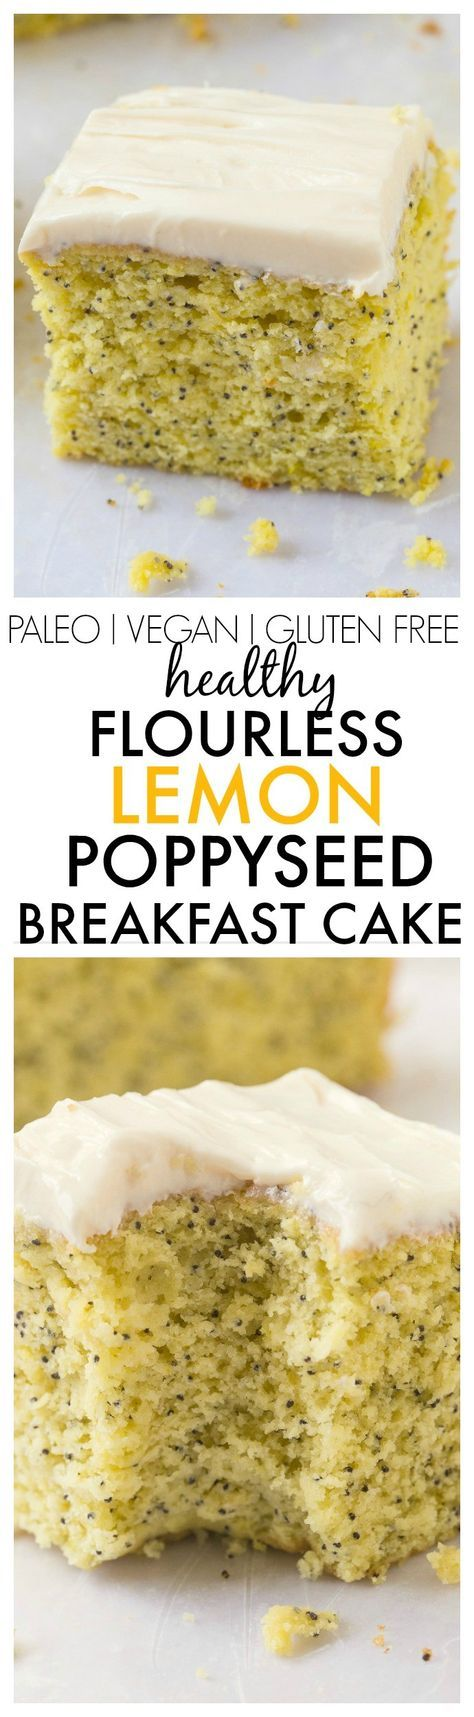 Healthy Flourless Lemon Poppy Seed Breakfast Cake  Light and fluffy on the inside  tender on the outside  an accidentally healthy breakfast  dessert or snack  Absolutely NO butter  oil  flour or sugar   vegan  gluten free  paleo recipe   thebigmansworld com